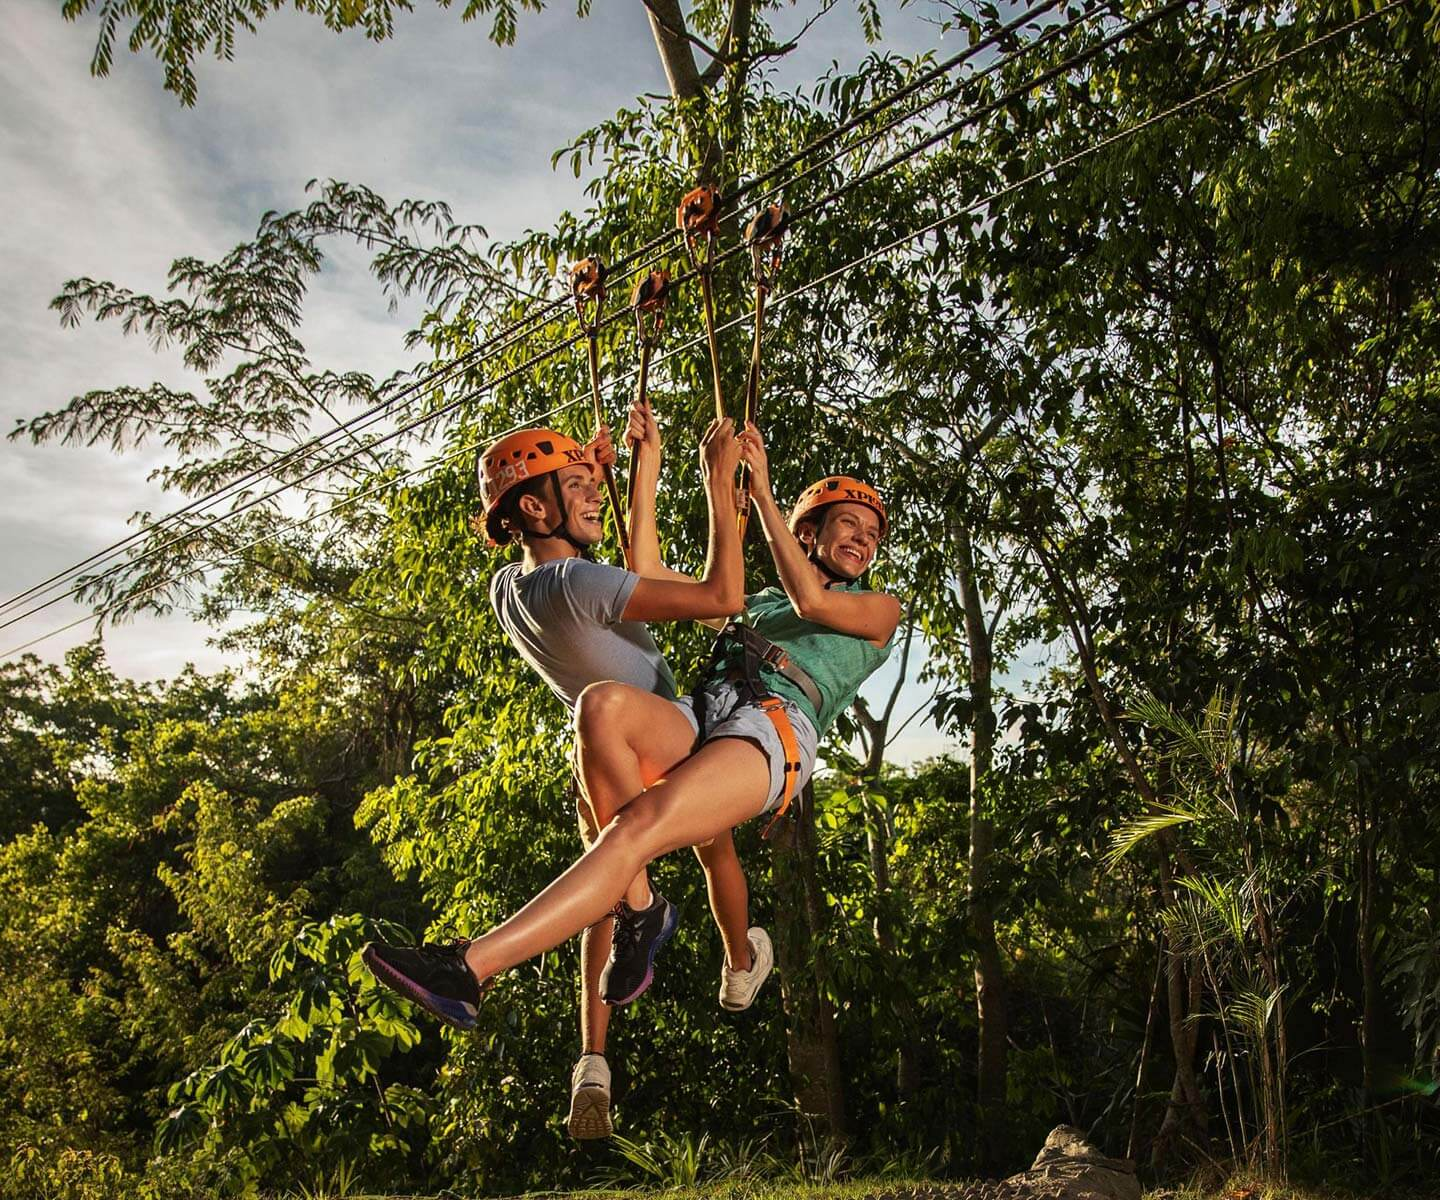 Fly across the Mayan jungle in an impressive zip-lines track!